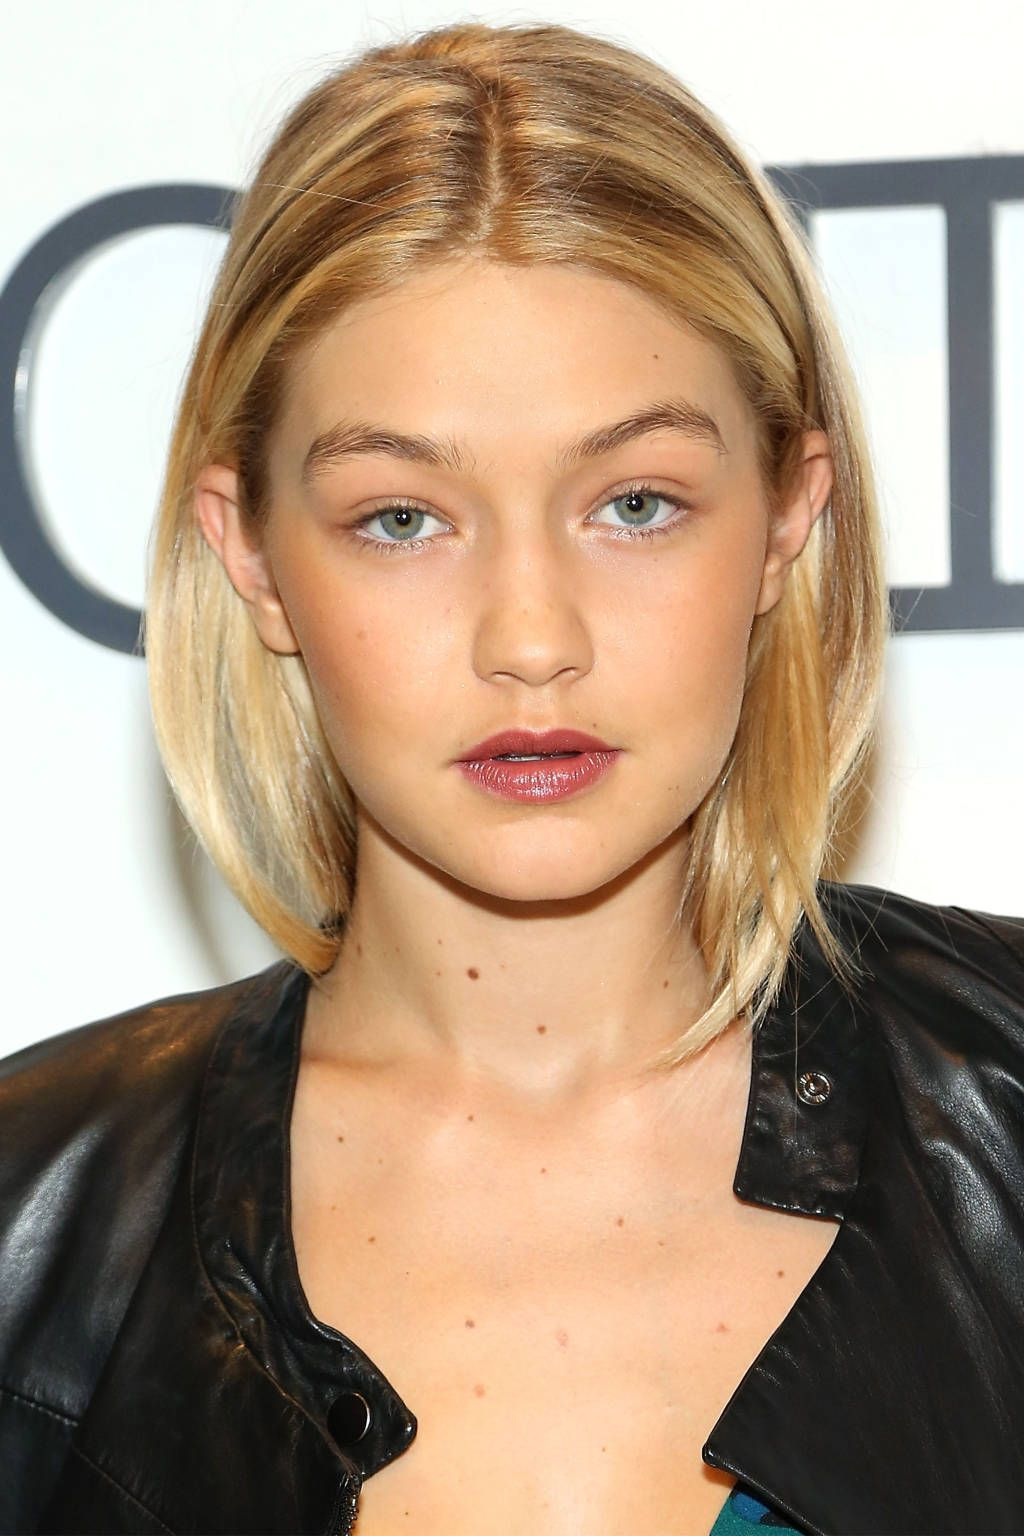 Get the beauty secret to bronzed skin and berry lips like Gigi Hadid on our website!